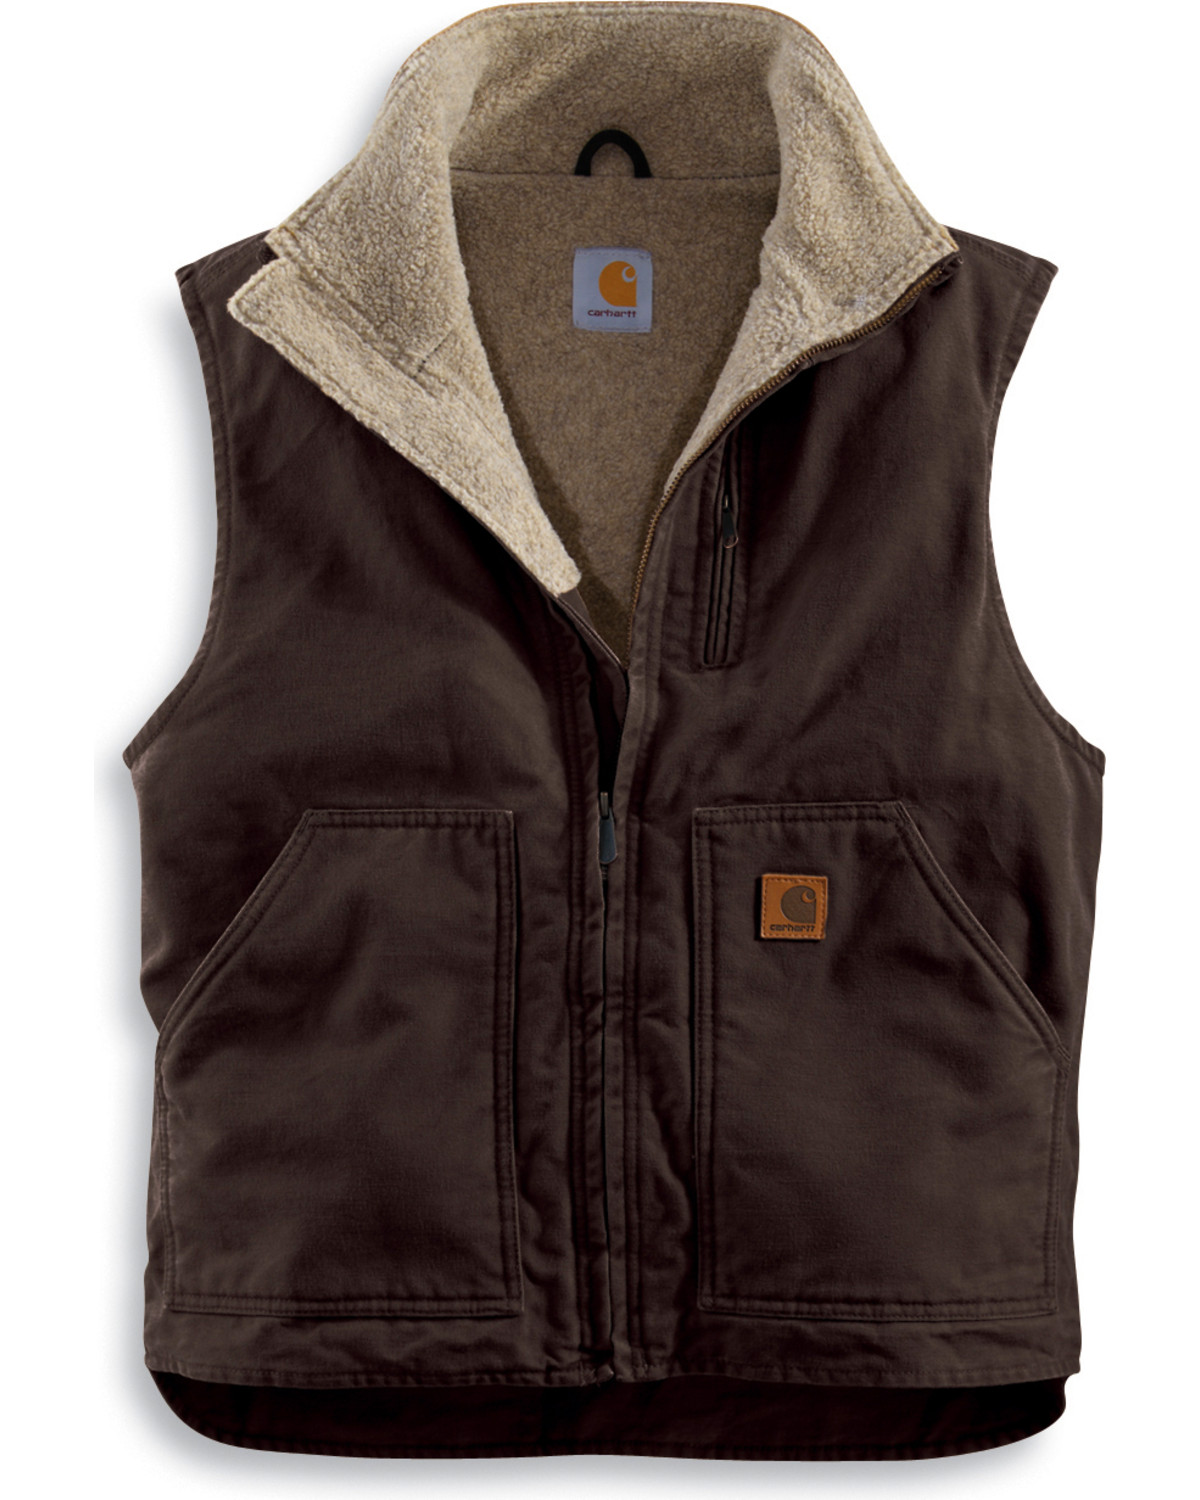 Carhartt Sherpa Lined Sandstone Duck Work Vest Country